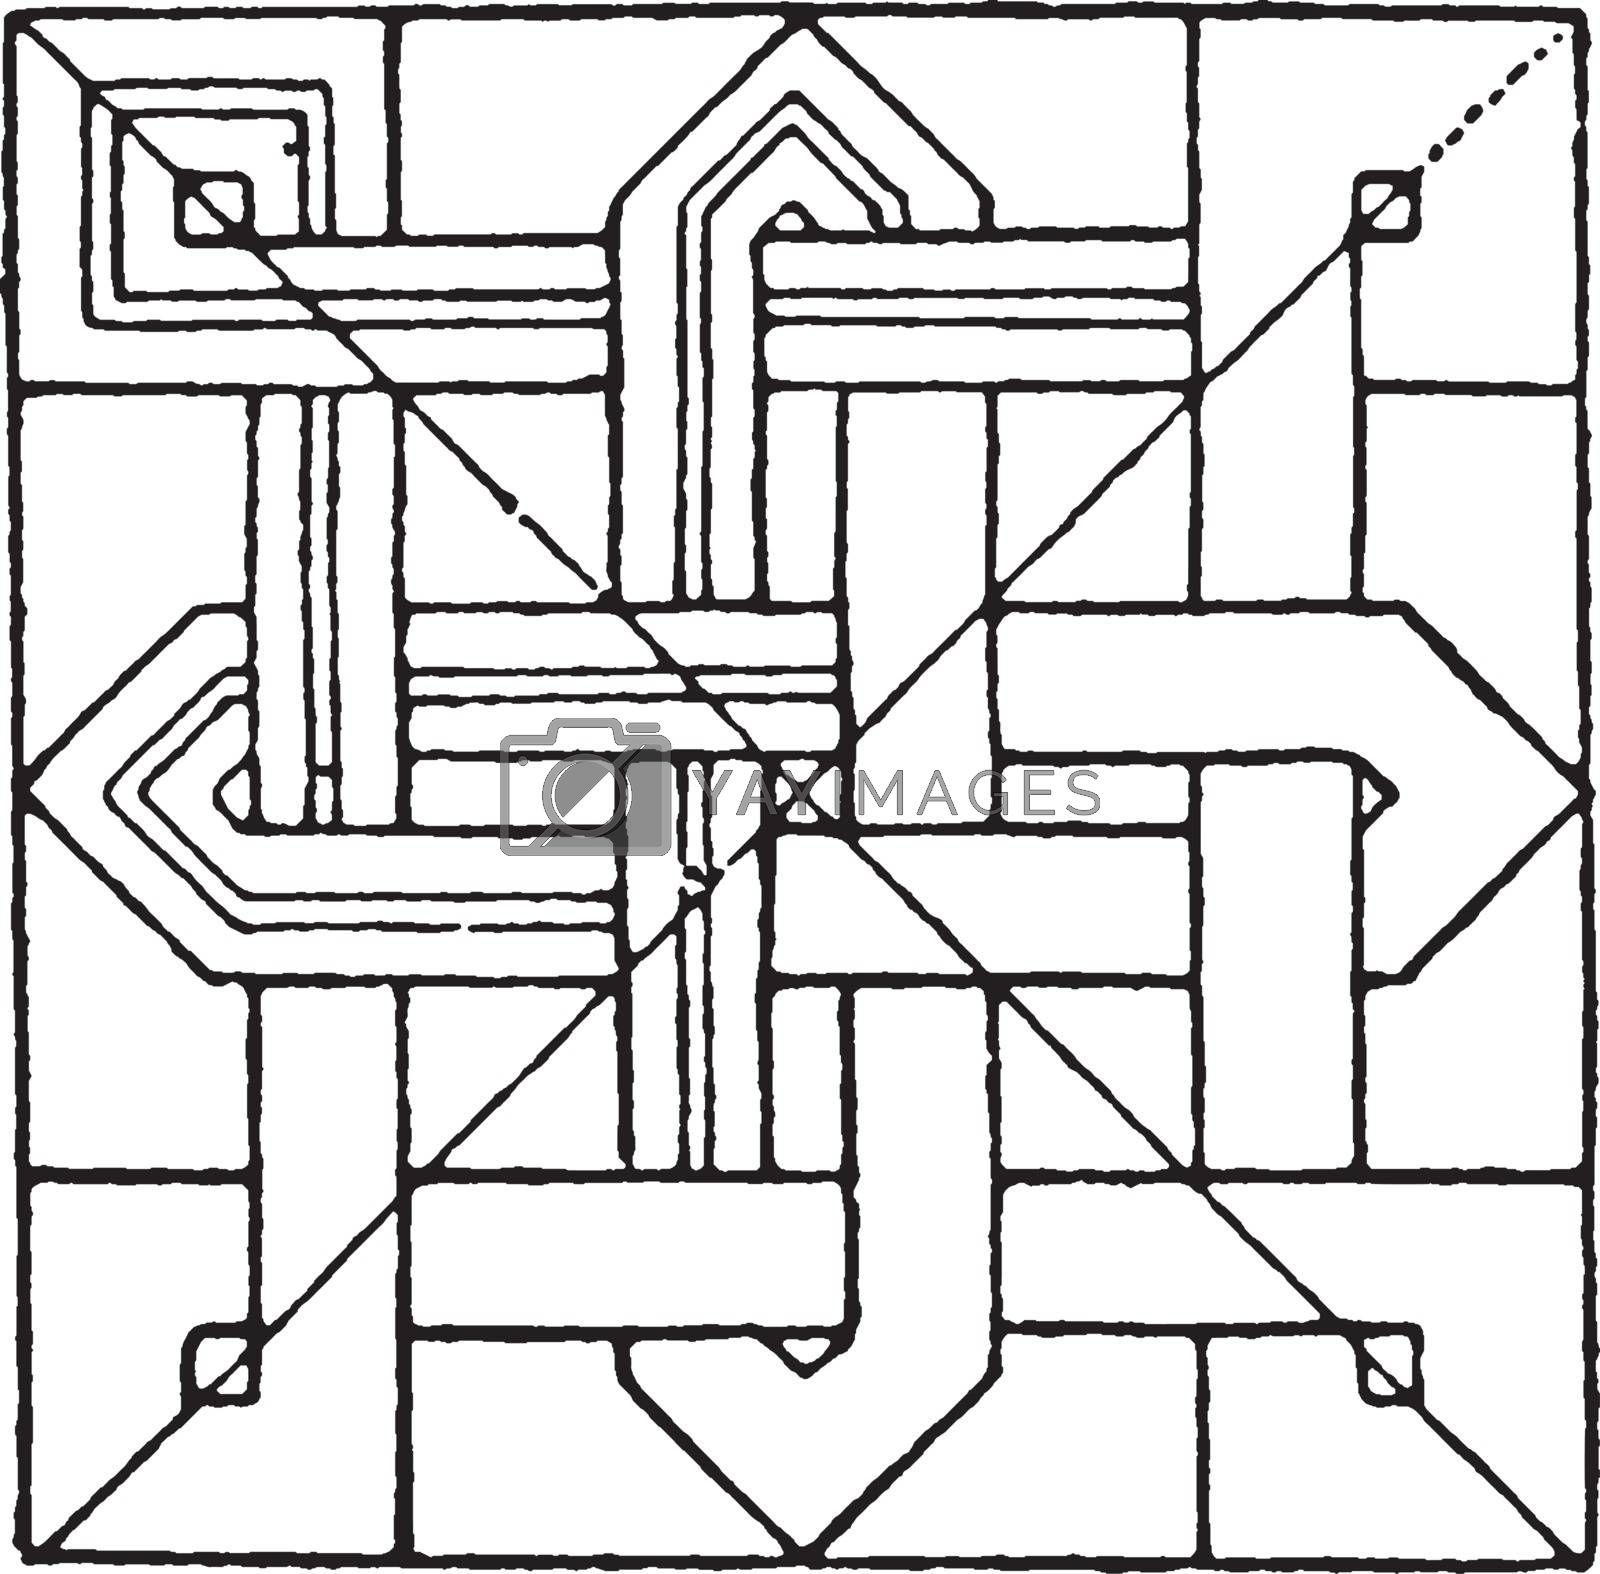 Inlaid Work Square Panel have a traditional design, vintage engr by Morphart